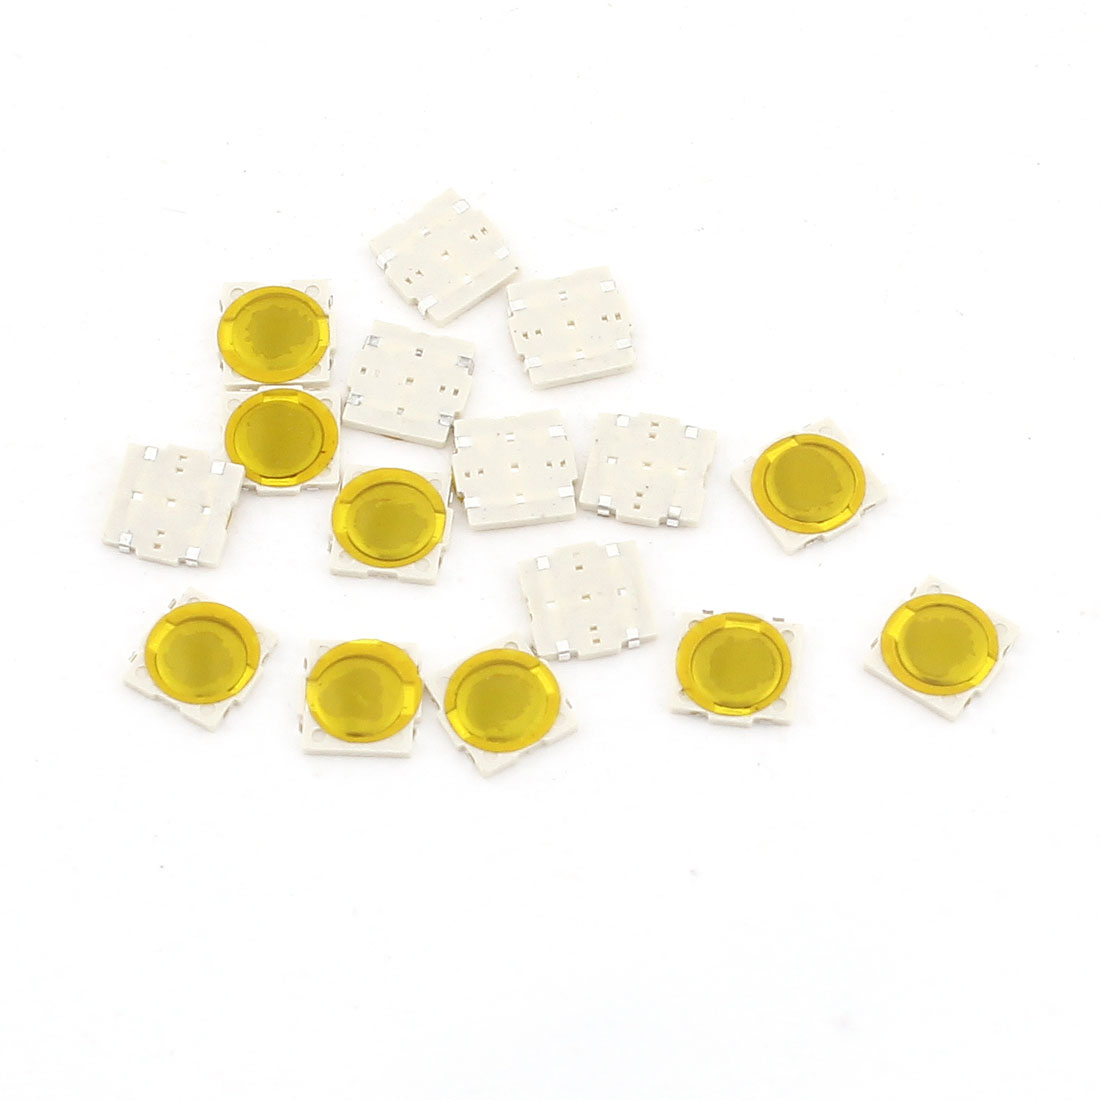 15 Pcs DC 50V 1A 4mmx4mmx0.5mm SMD PCB Momentary Tactile Tact Push Button Switch